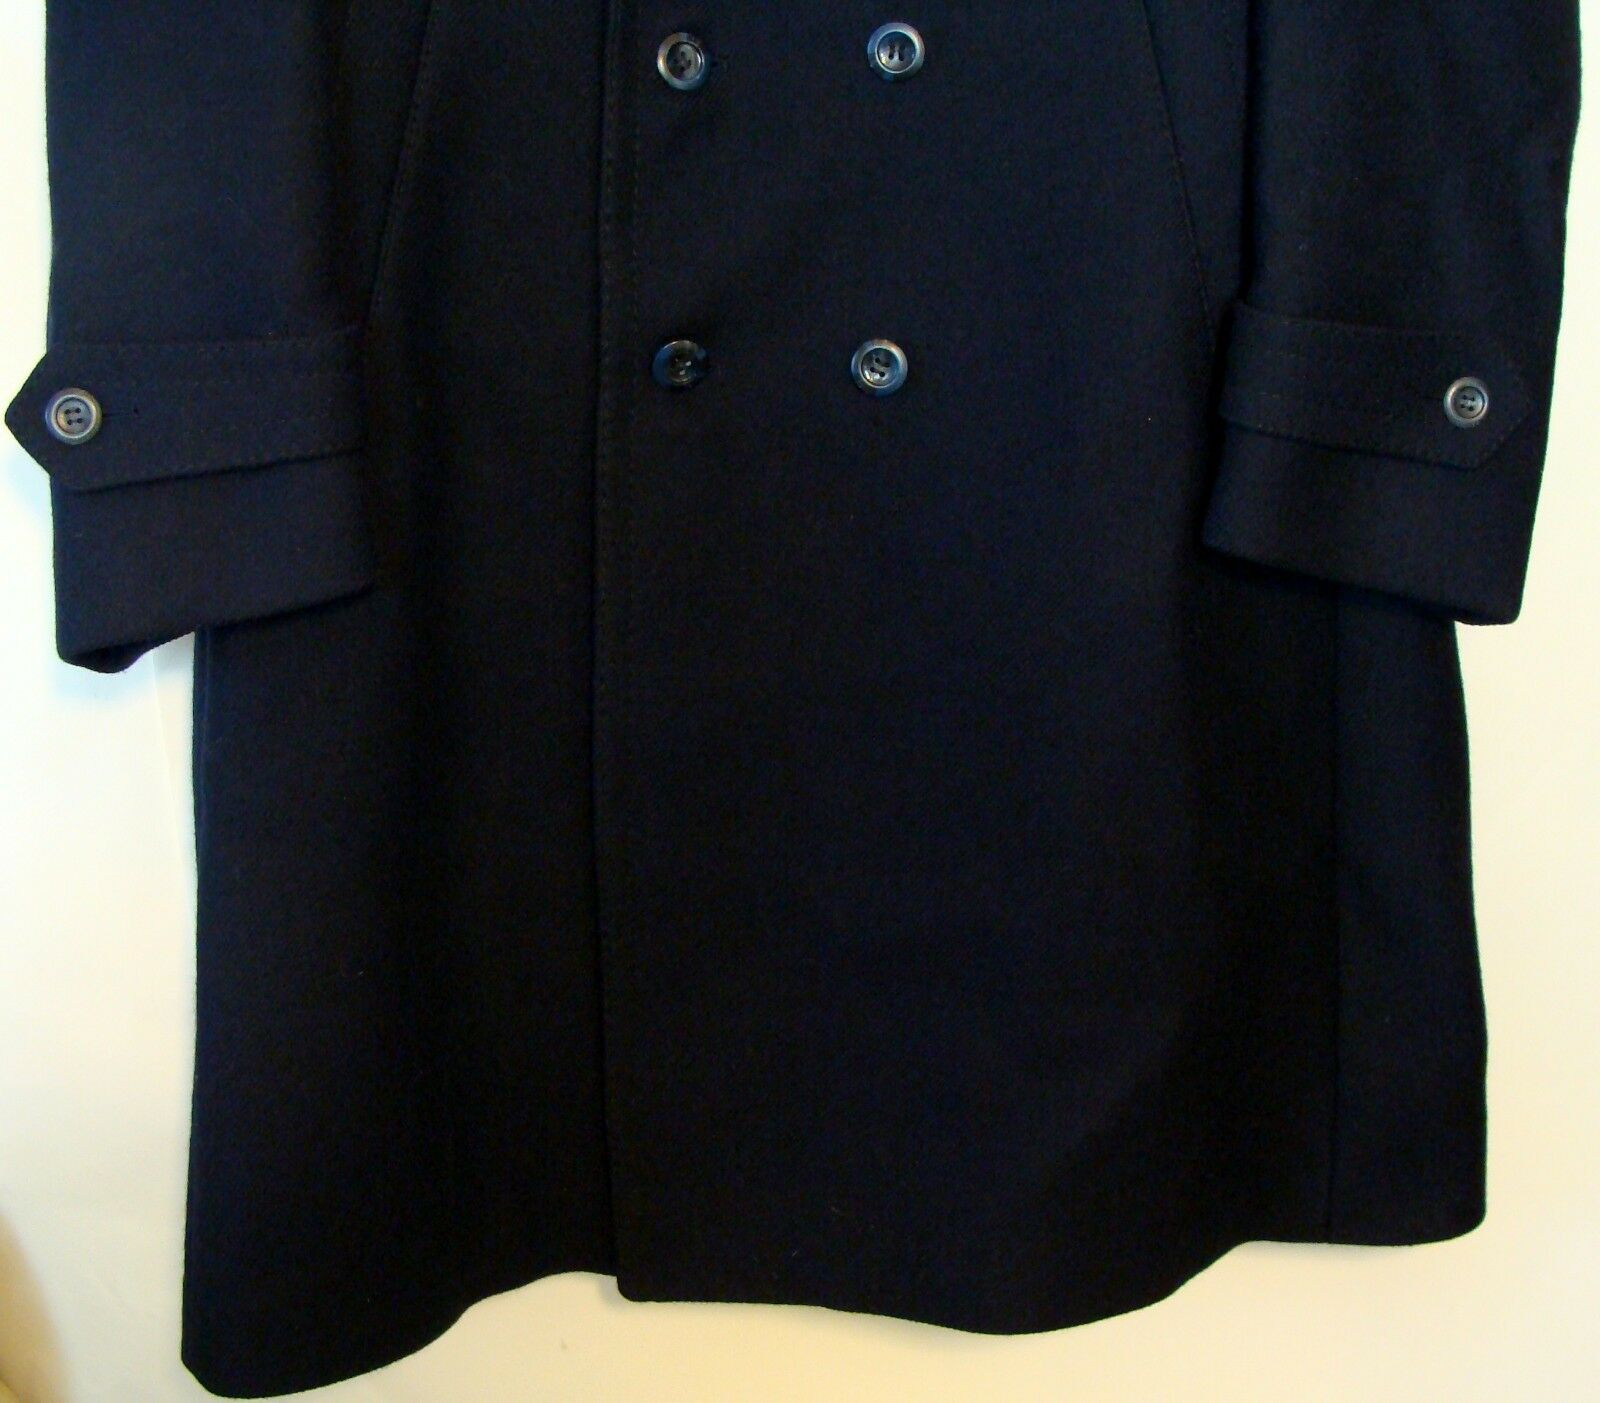 VARTEKS Uomo NAVY blu MILITARY VIRGIN BREASTED Lana DOUBLE BREASTED VIRGIN Cappotto SIZE 42R  BC d63eff